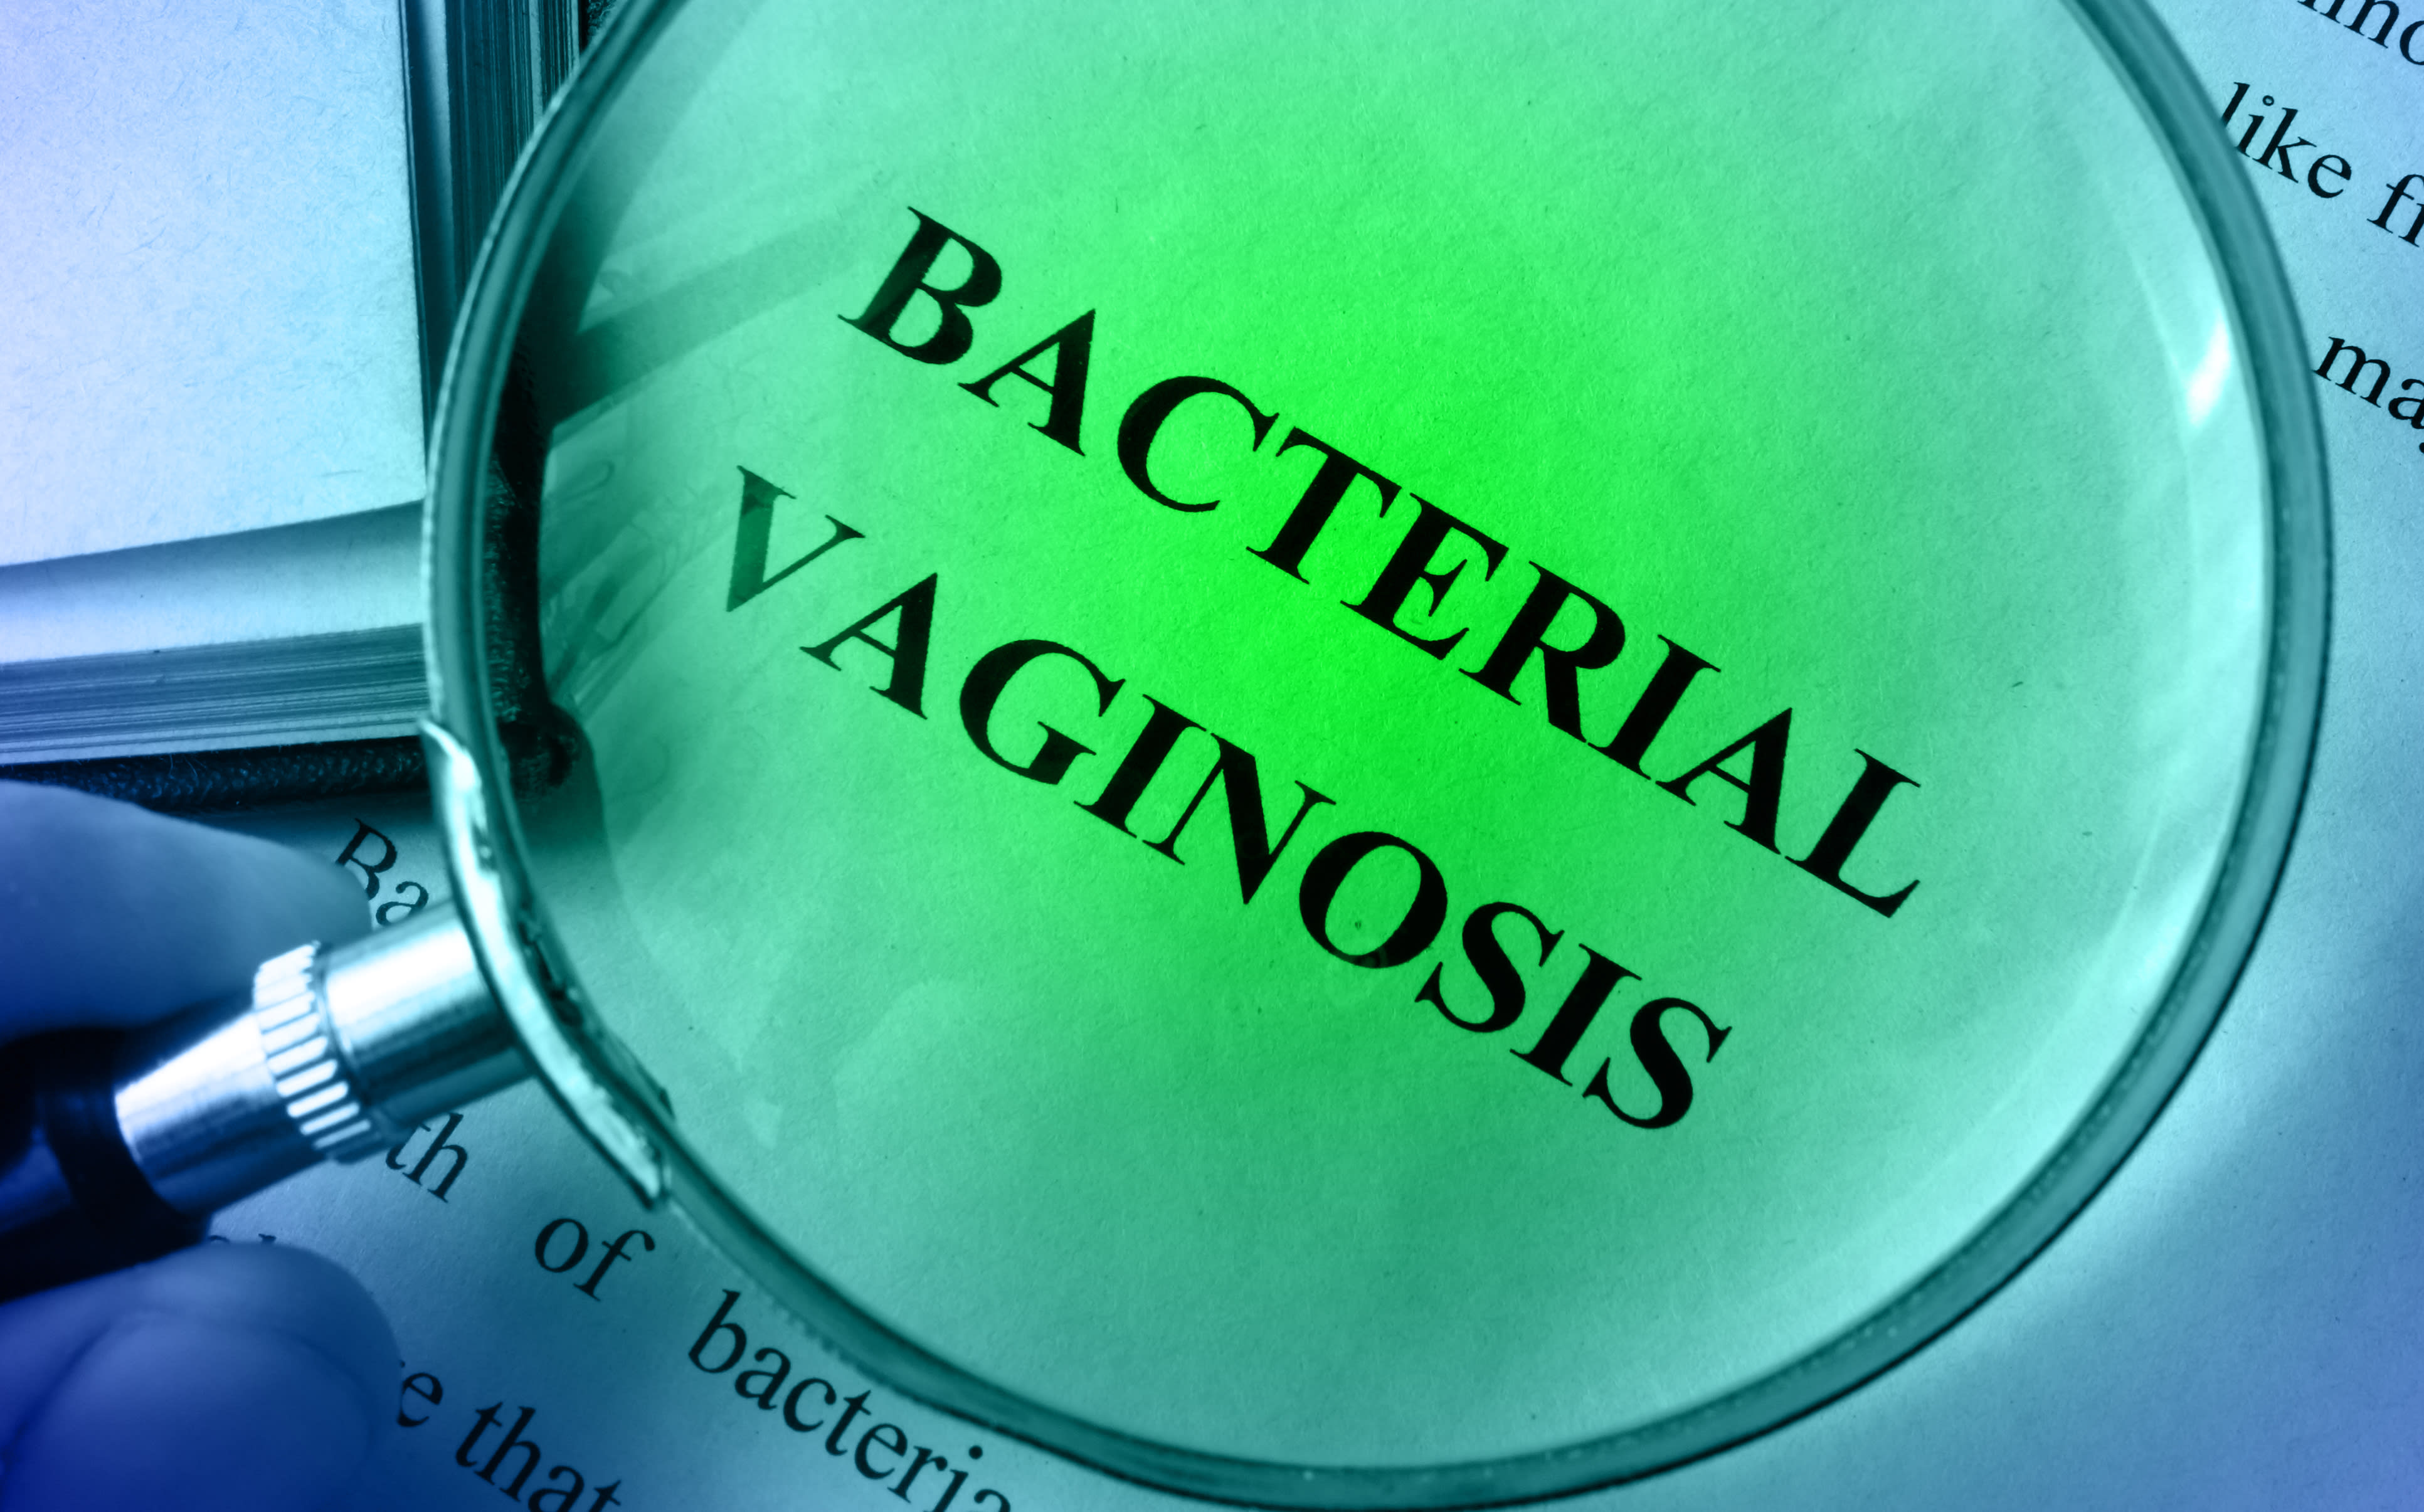 Bacterial vaginosis needs new treatment approaches – Monash Lens